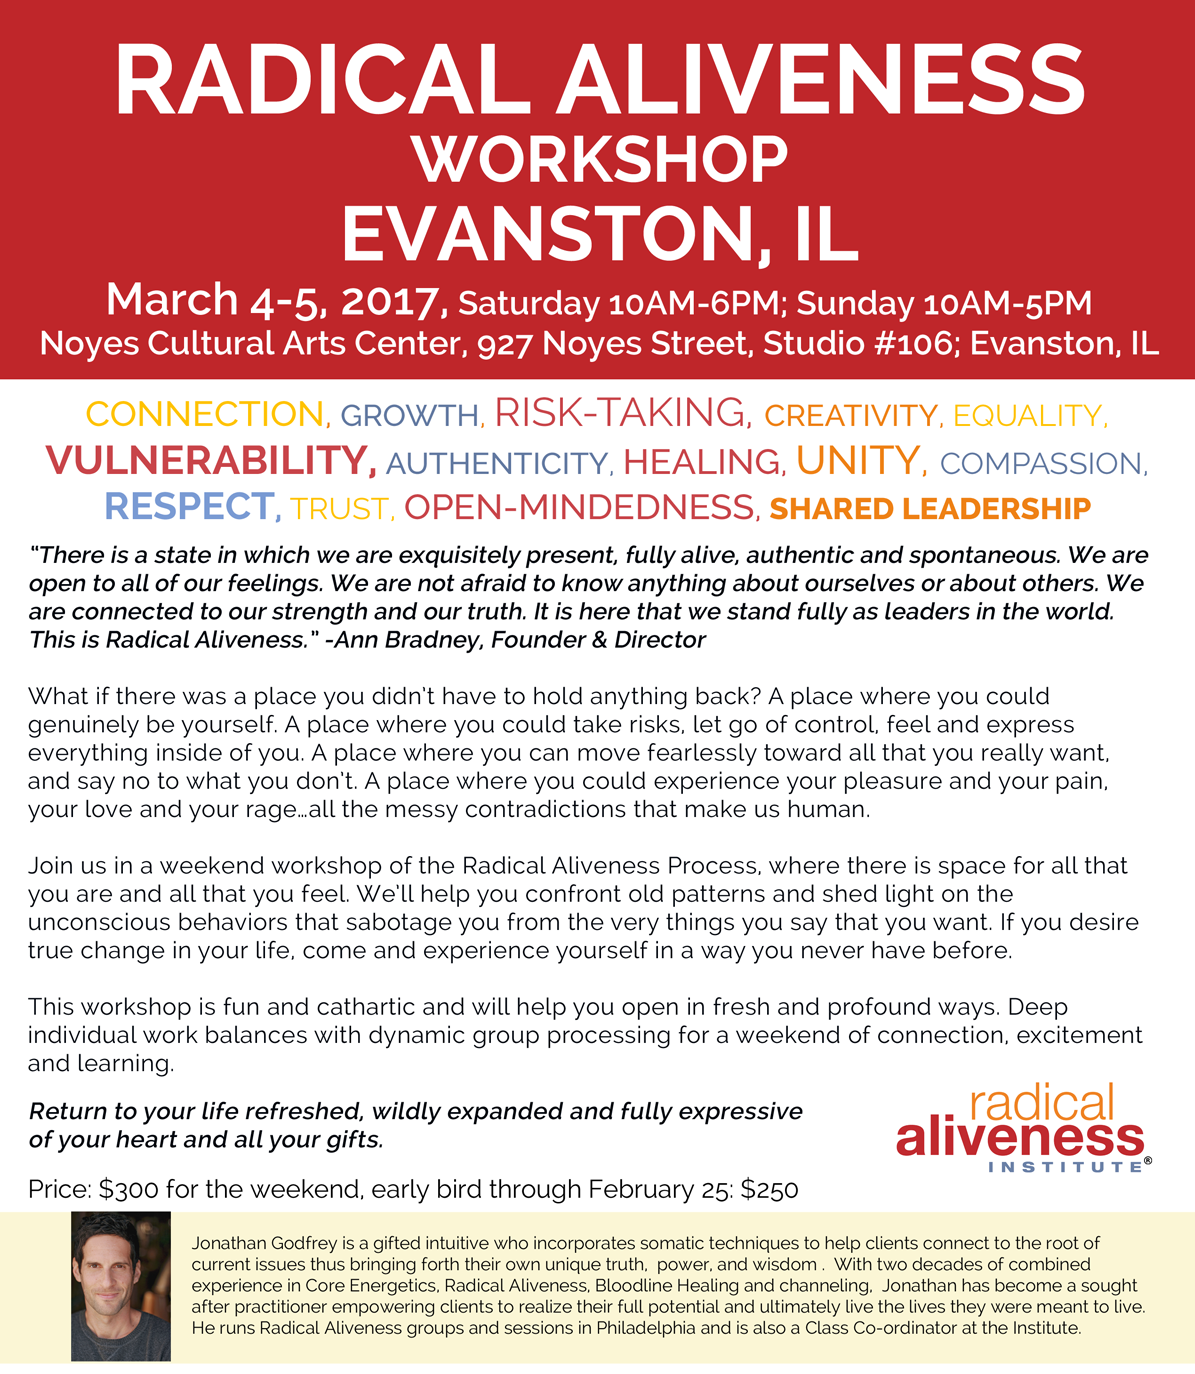 RADICAL ALIVENESS WORKSHOP EVANSTON, IL with Jonathan Godfrey @ Noyes Cultural Arts Center | Evanston | Illinois | United States